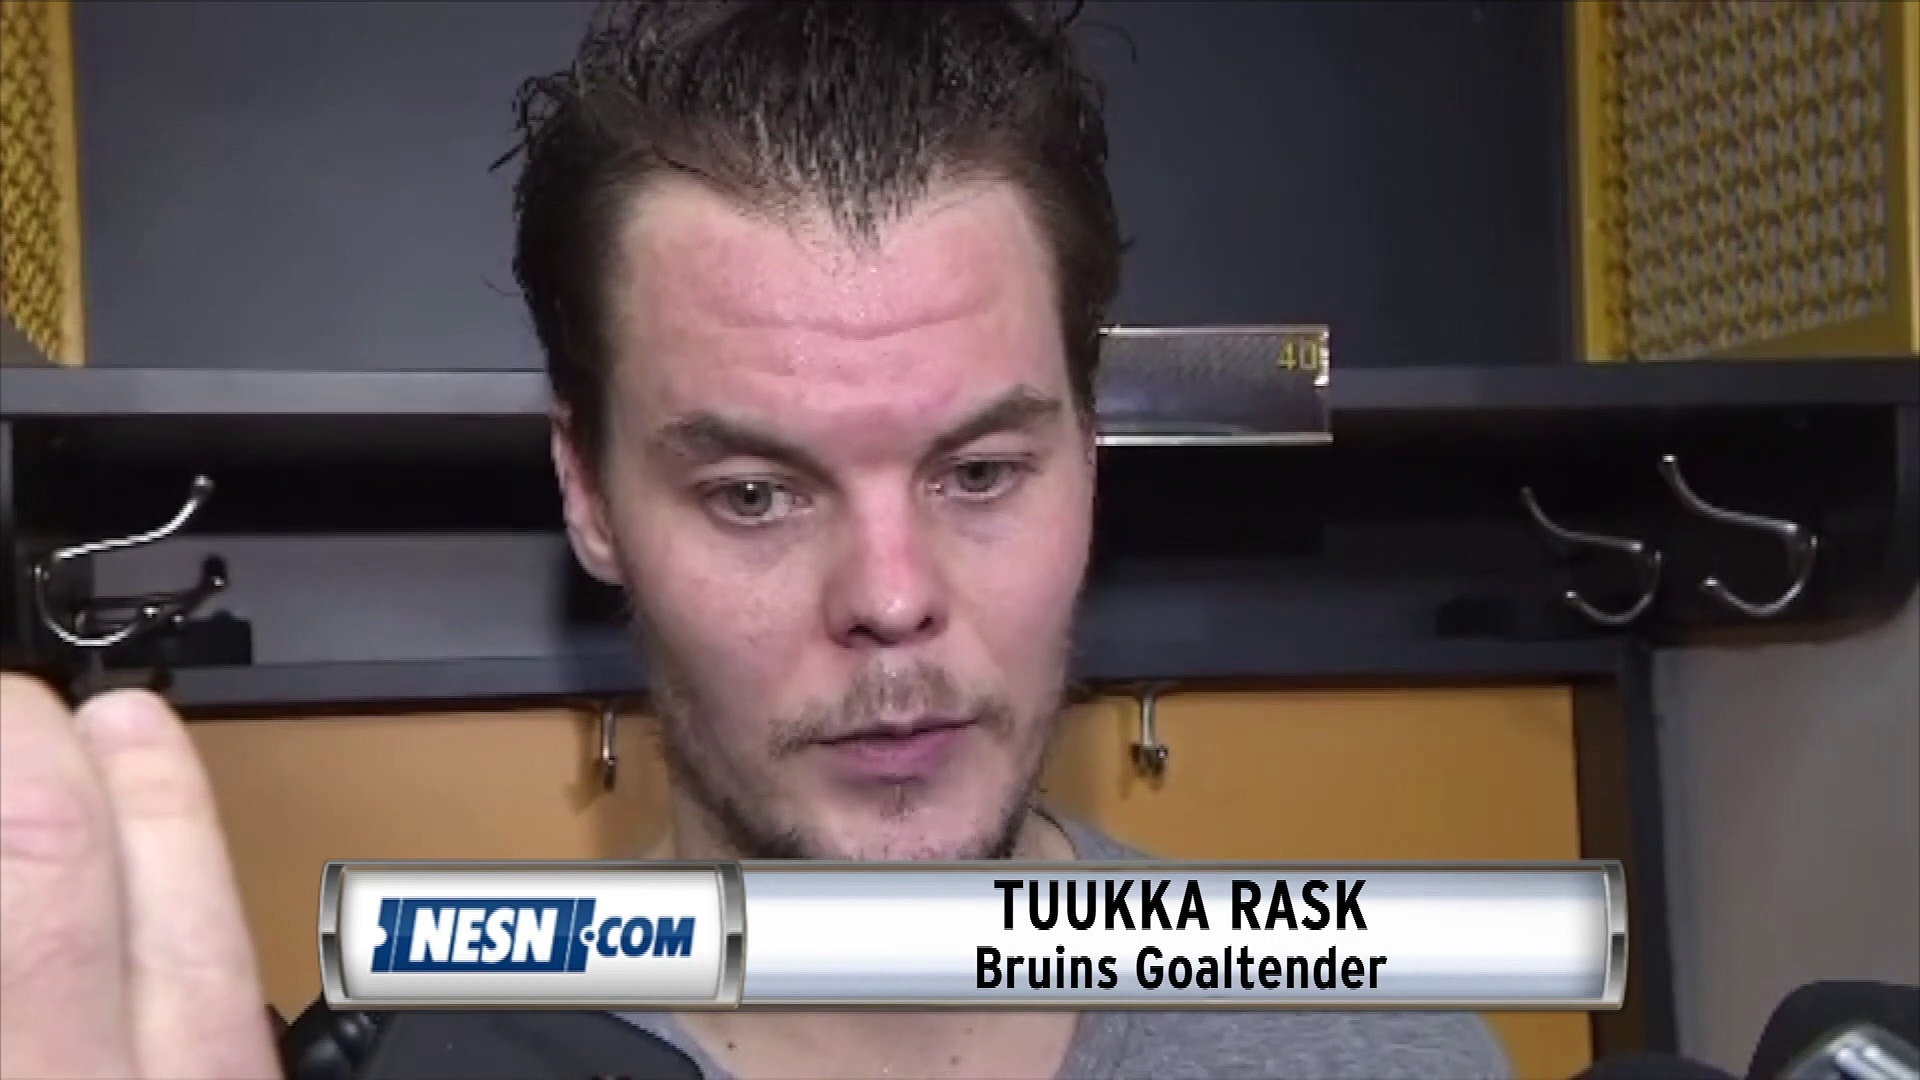 Tuukka Rask On Bruins-Hurricanes Series Not Being Over Despite 2-0 Lead